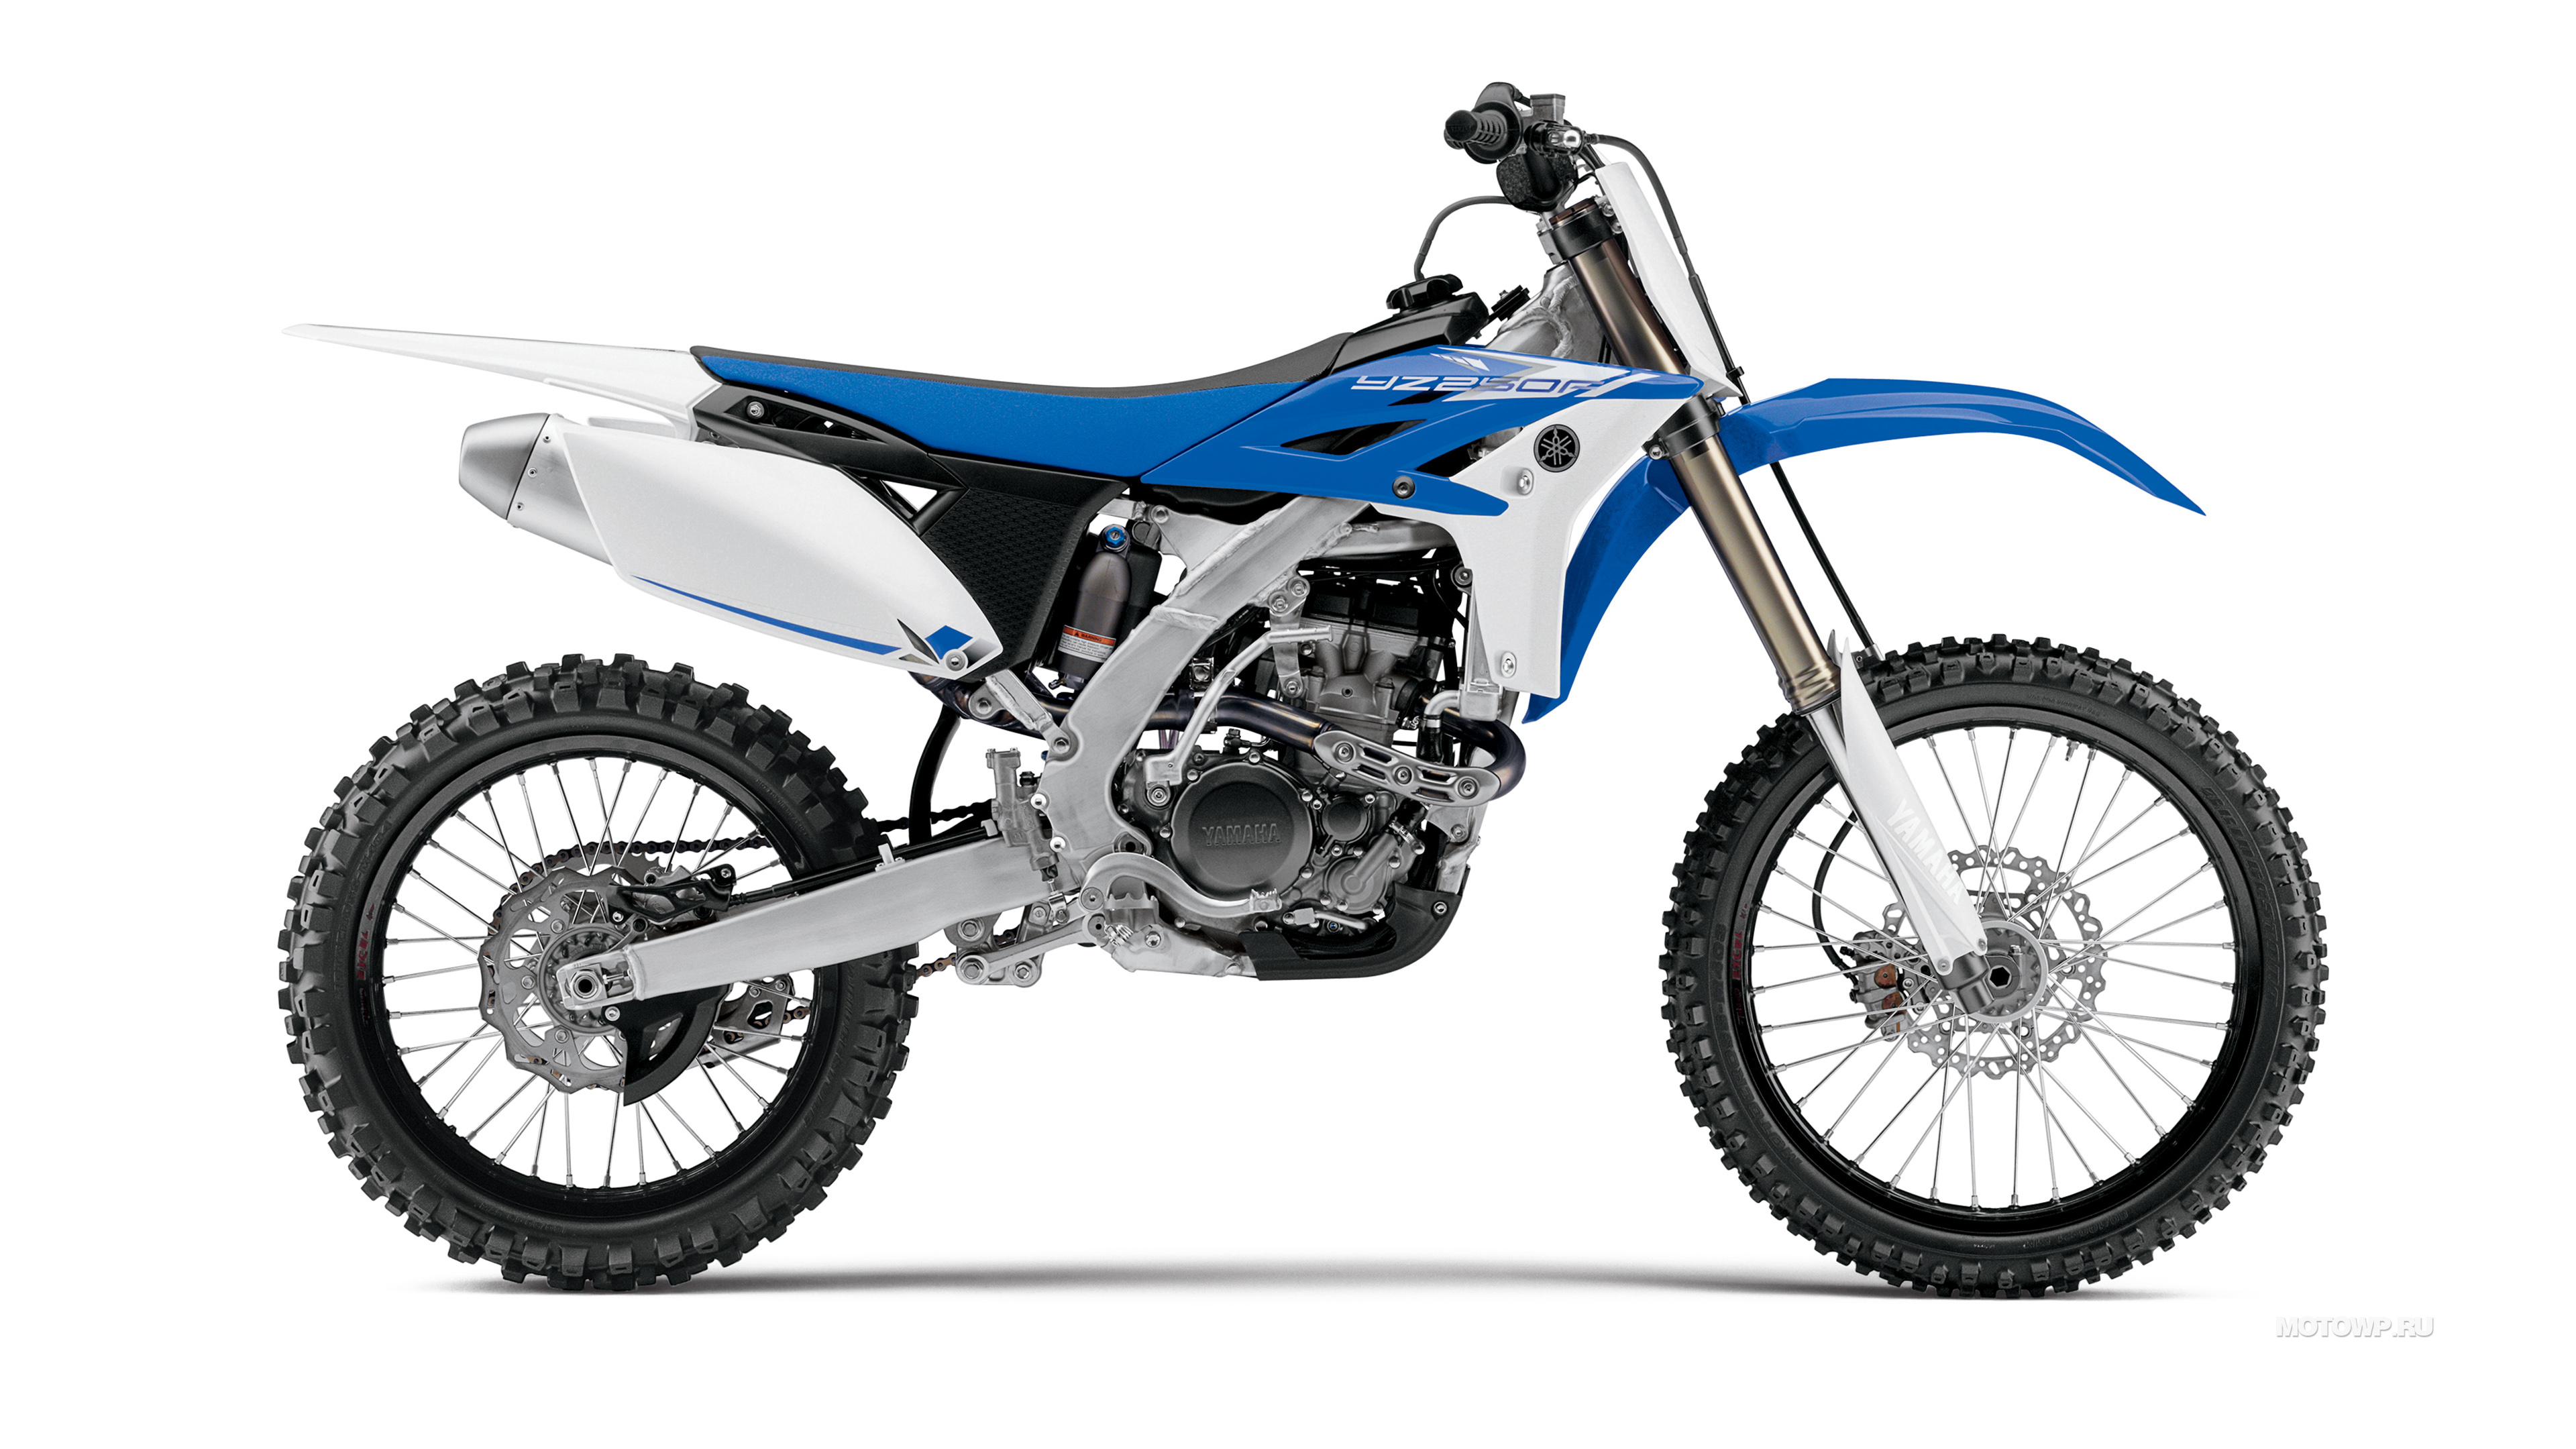 2008 yamaha yz250f owners manual pdf download free apps japantracker 2003 yamaha yz250f owner's manual 2003 Yamaha YZ250F Graphics